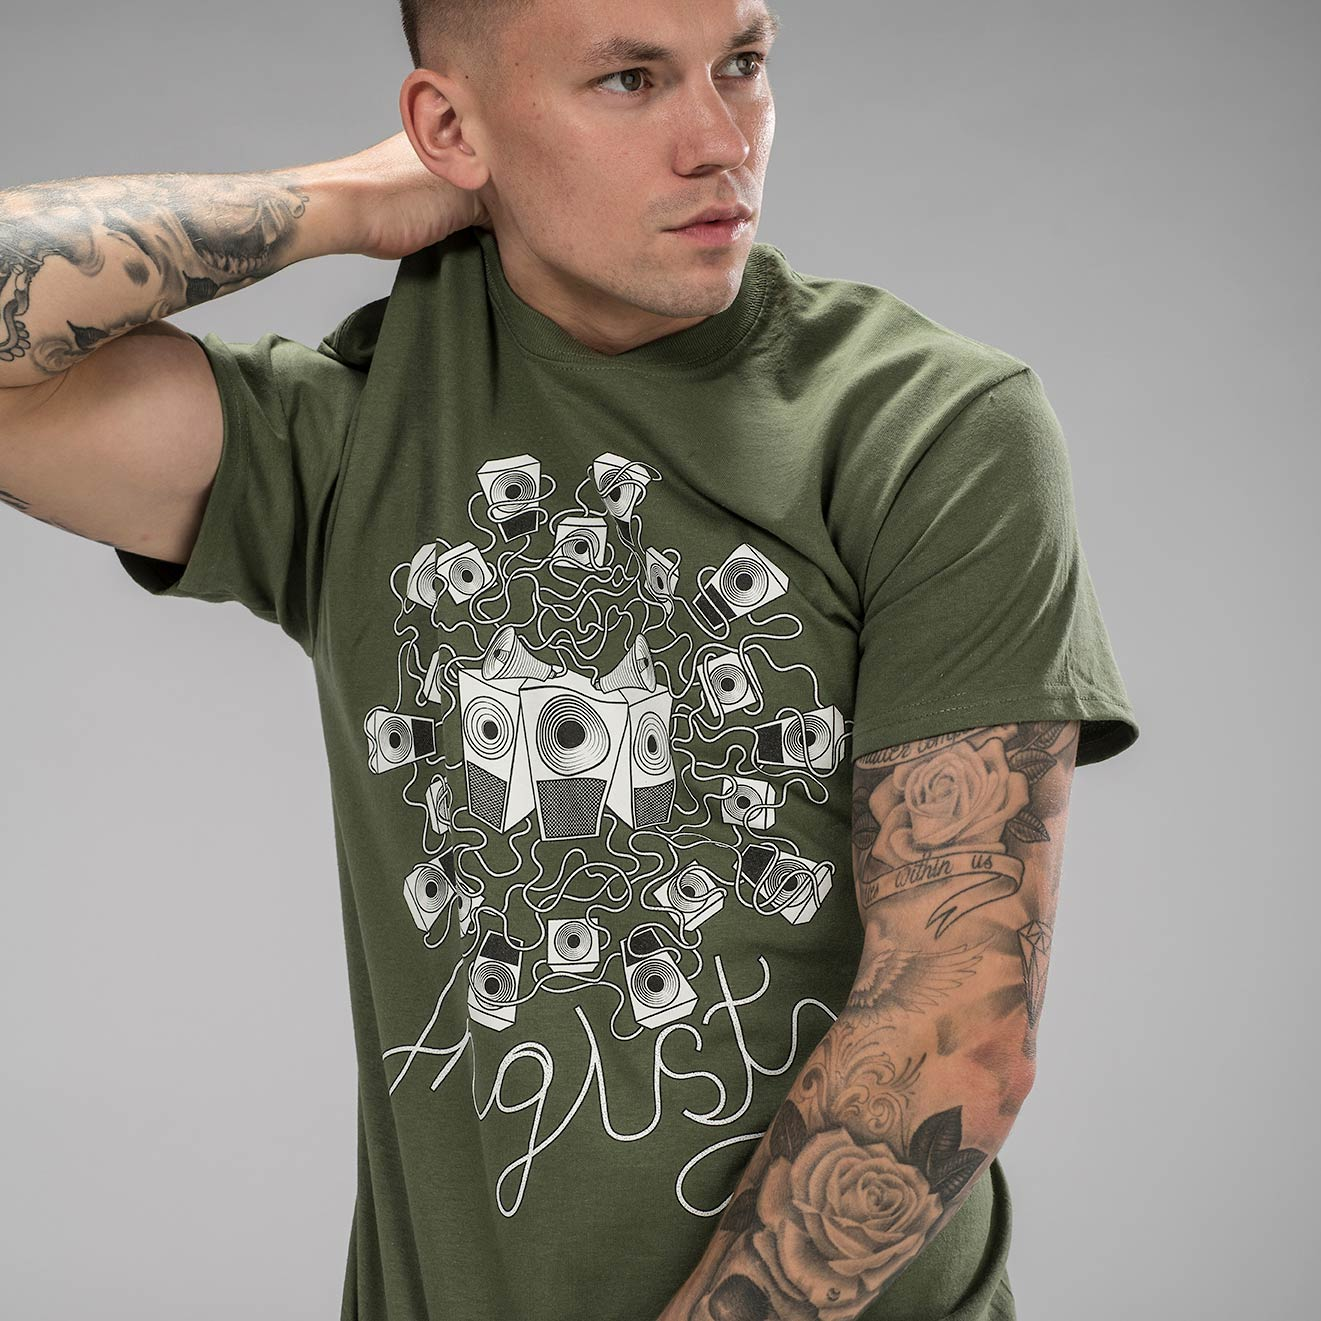 Green Junglist Soundsystem T-Shirt by Jnglst Clothing